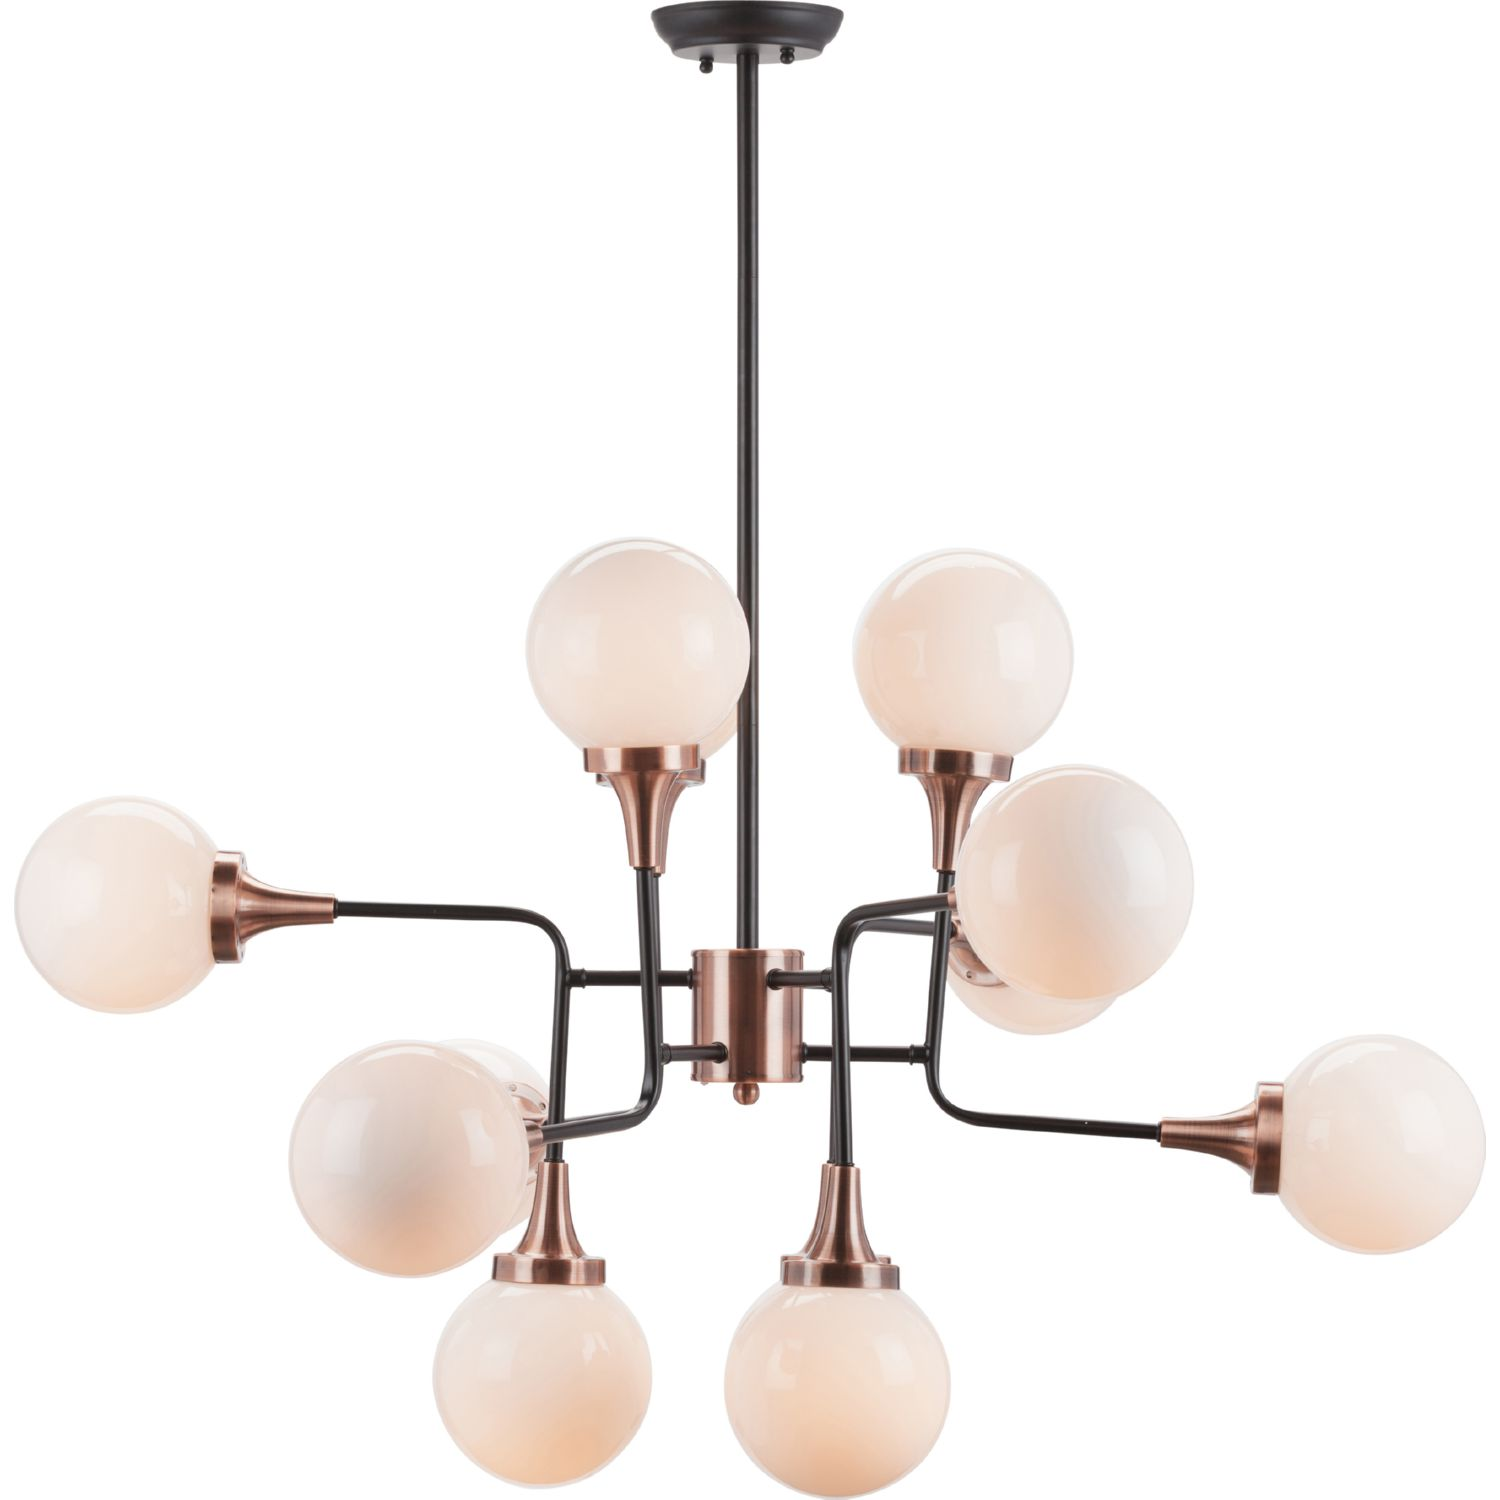 nuevo modern furniture hgra bella ceiling pendant light in  - bella ceiling pendant light in copper  black metal w opal glass